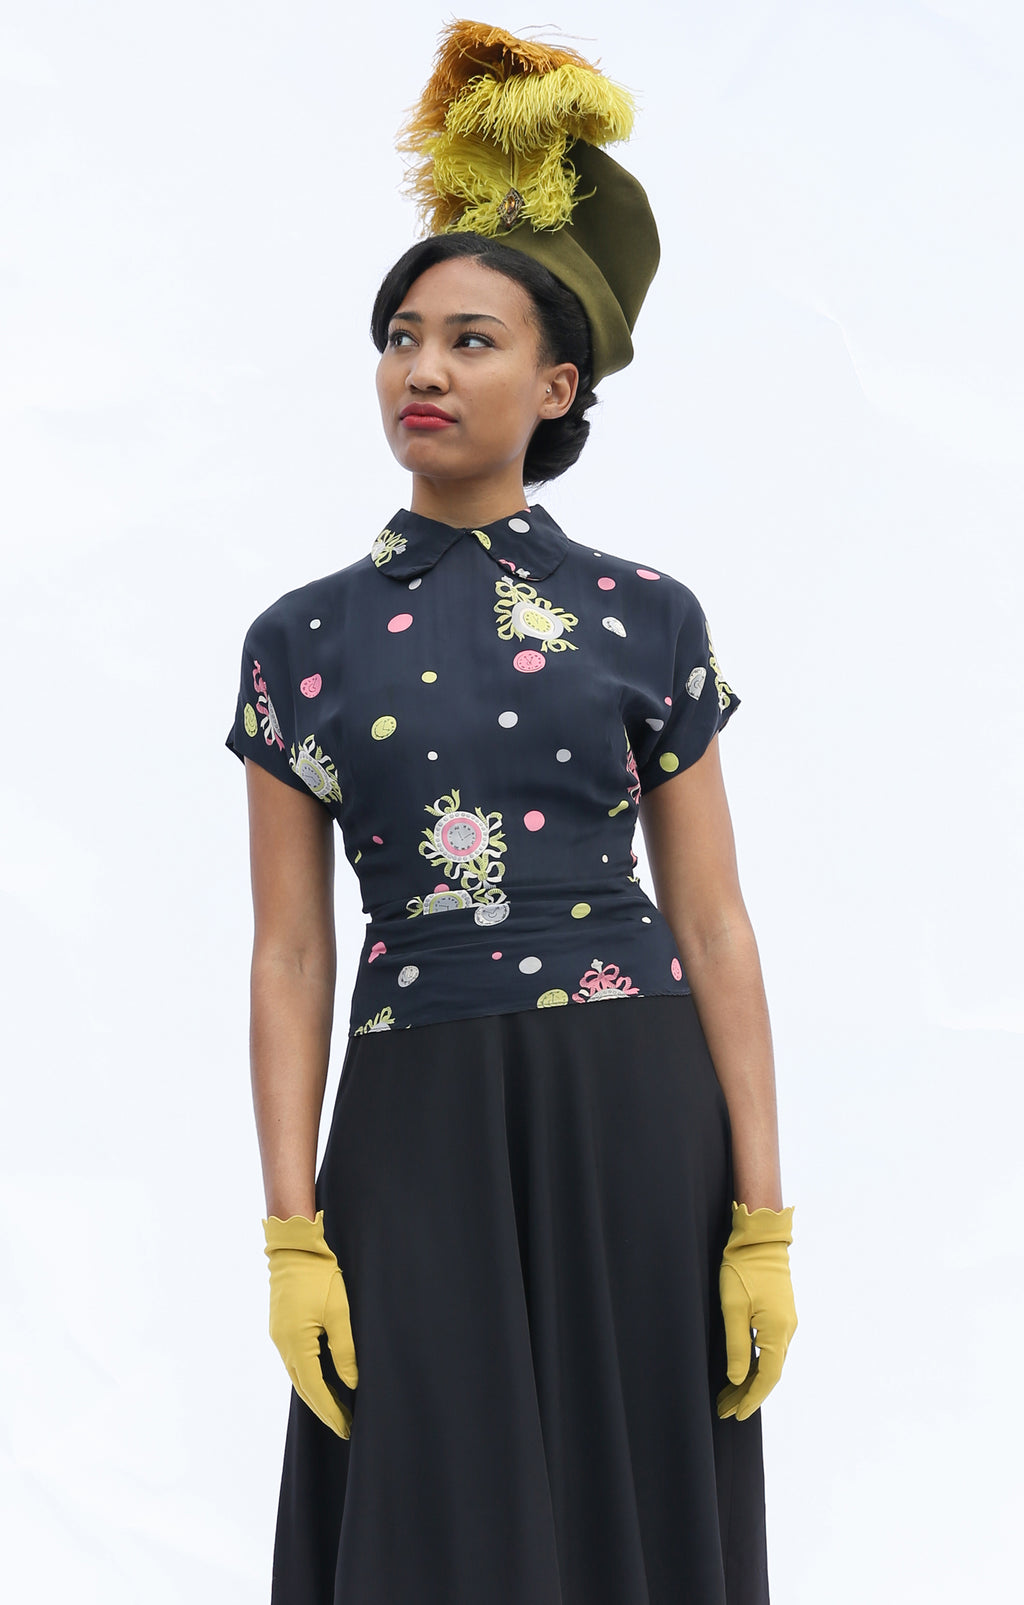 Smart Postwar 1940s Day Dress with Novelty Print Clocks and Black Skirt